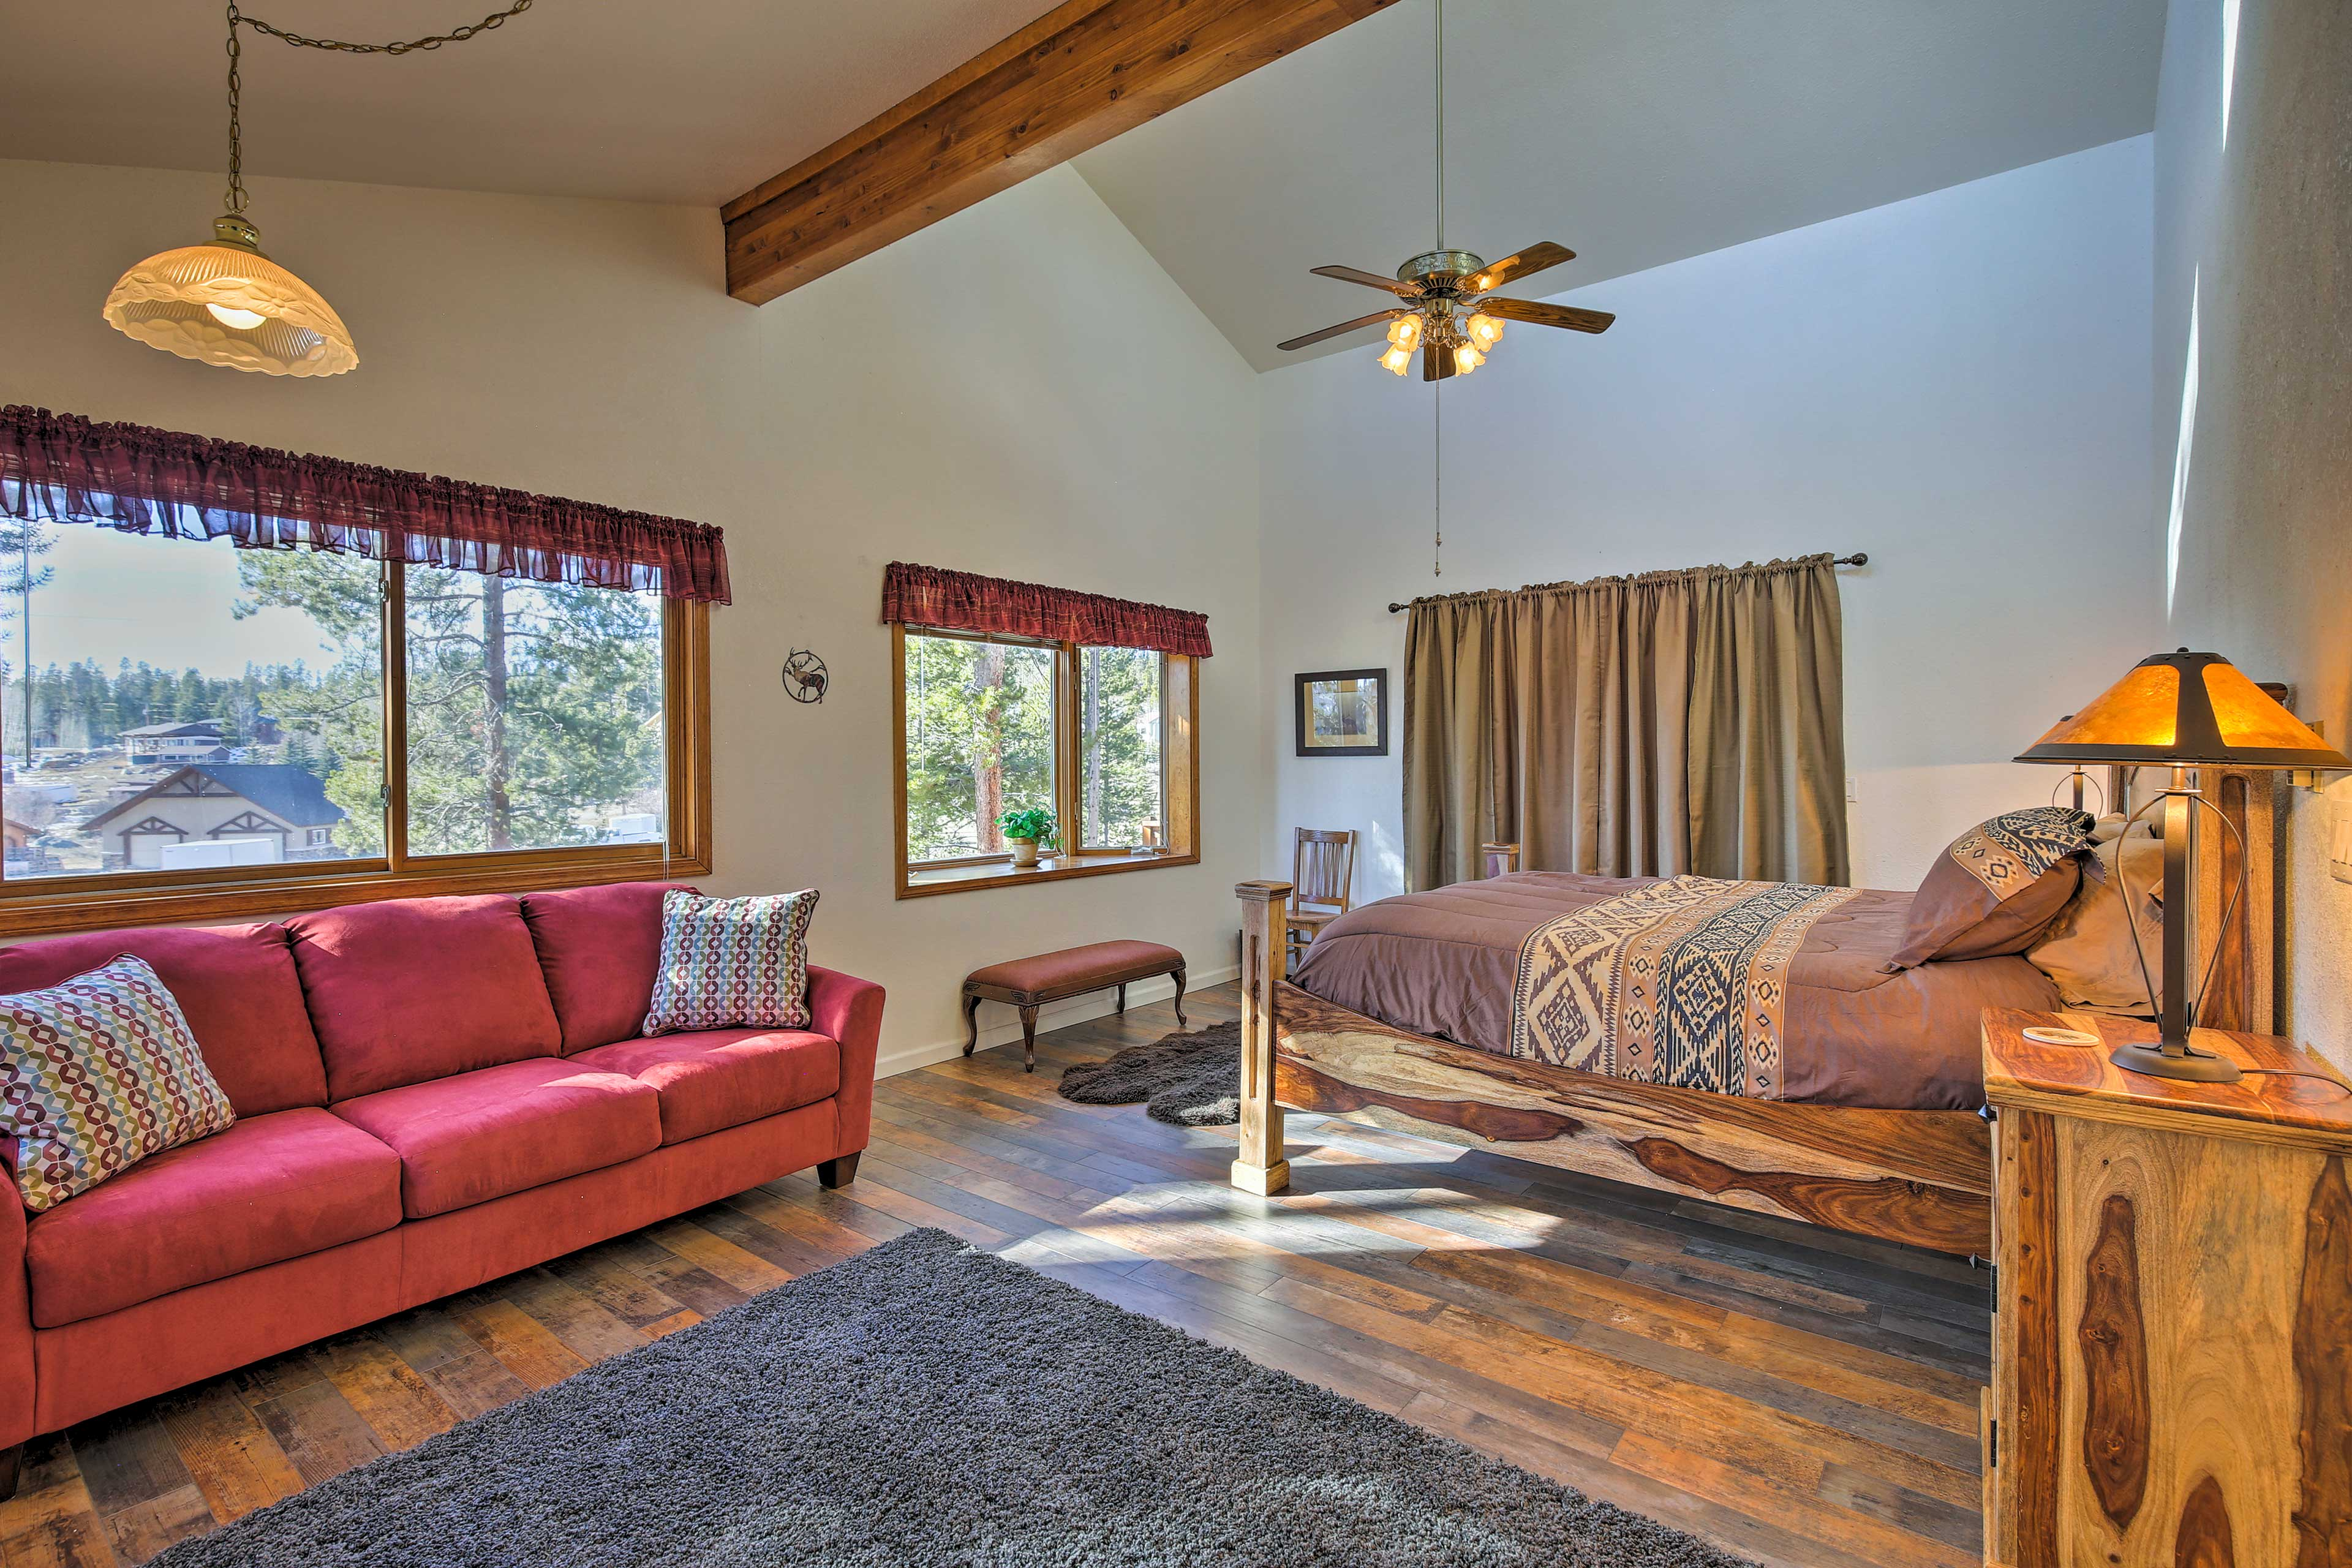 The master bedroom also hosts a pullout bed to accommodate 2 guests.